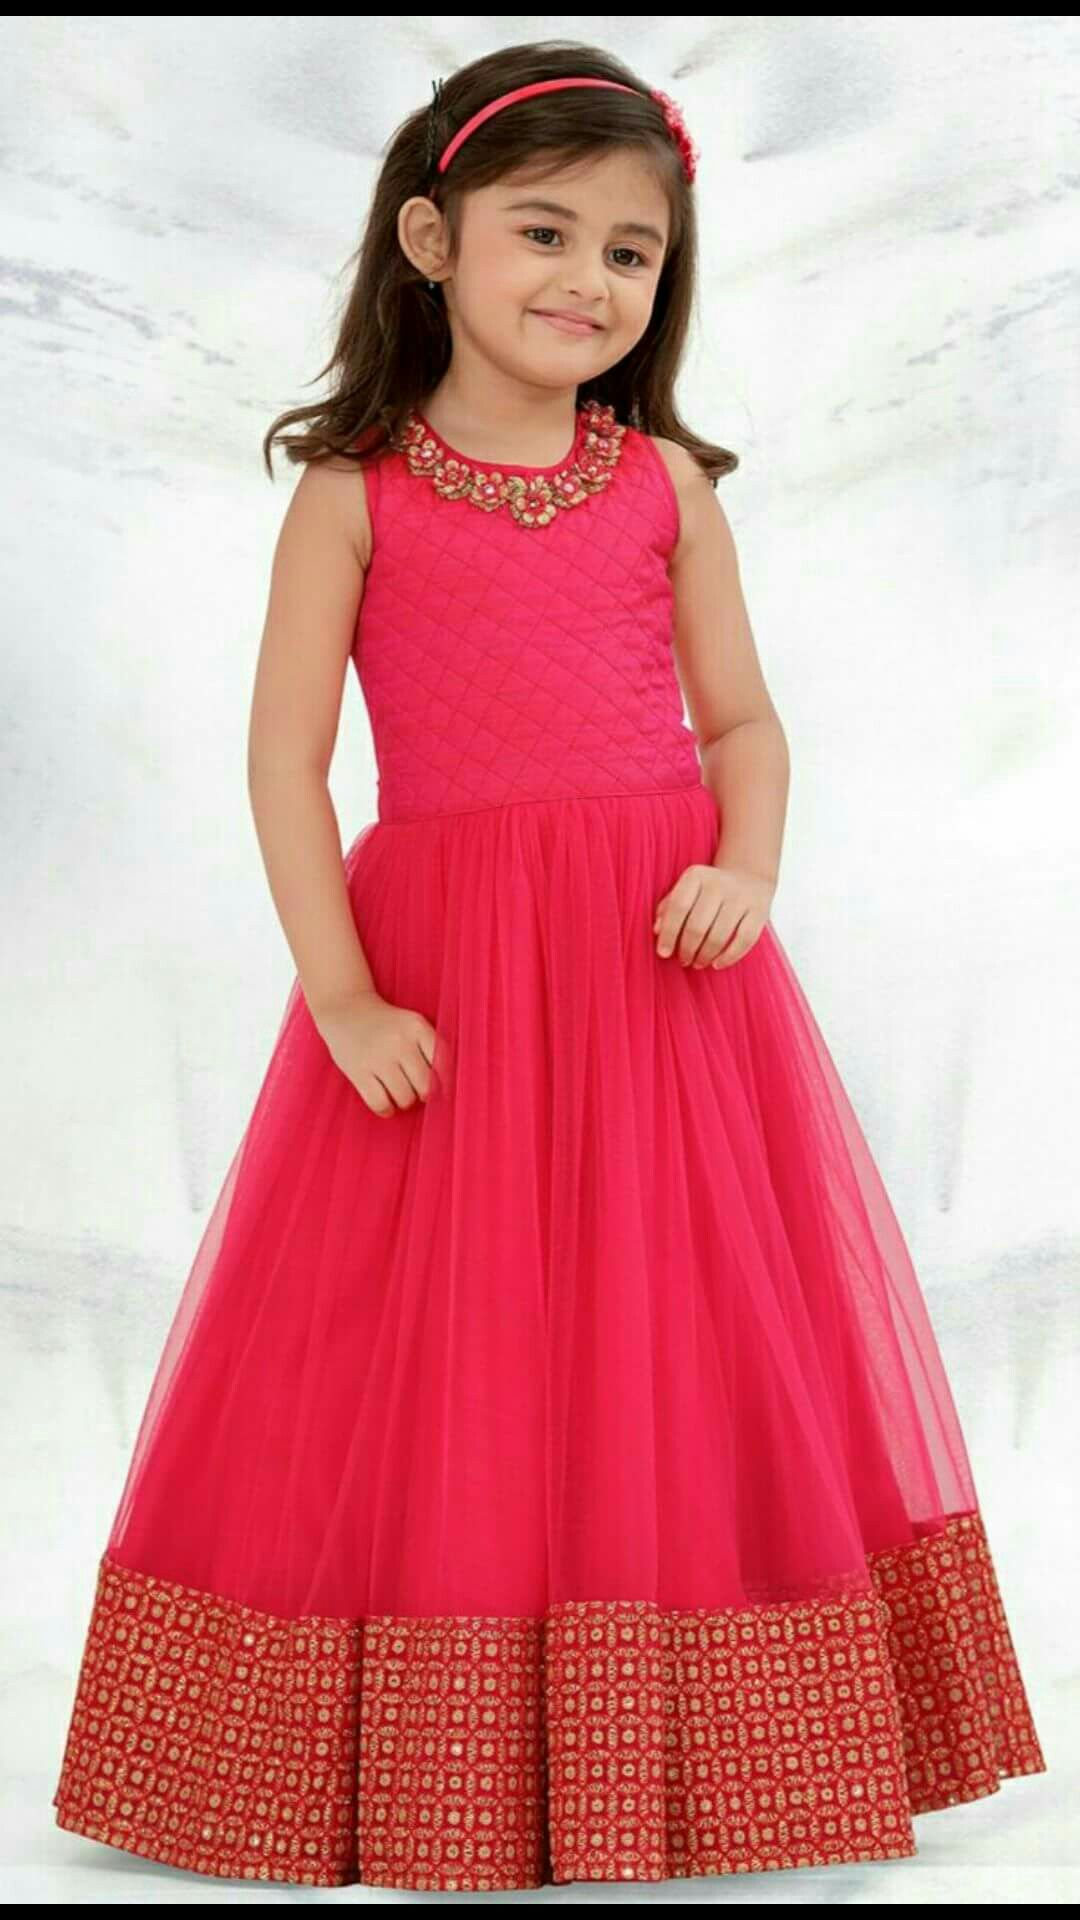 bd09be0870 Frocks | frocks in 2019 | Kids gown, Kids party wear dresses, Gowns ...